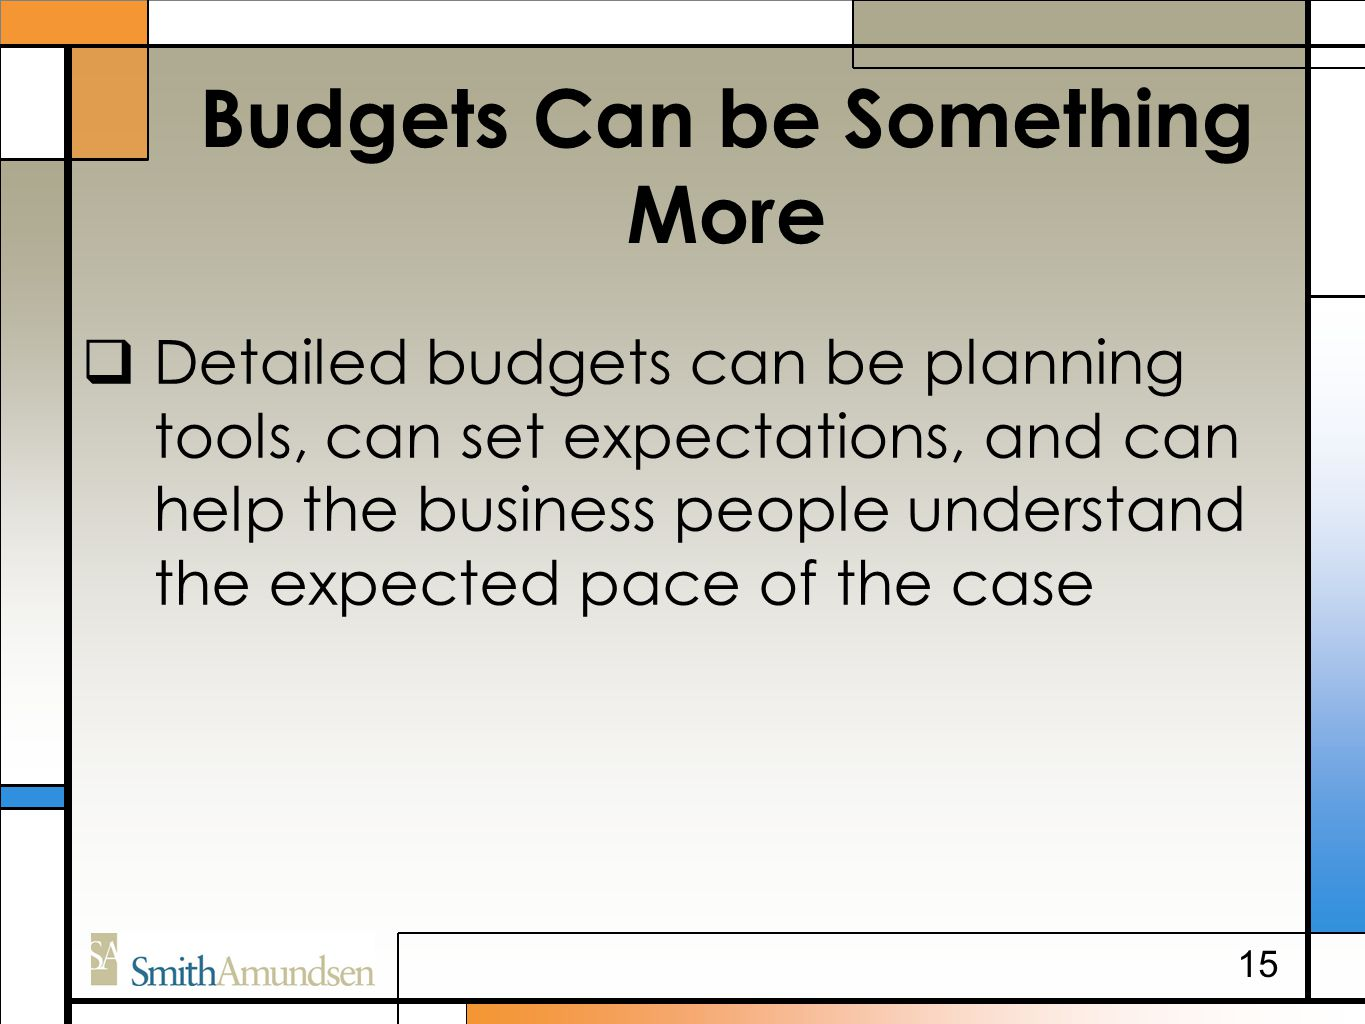 Budgets Can be Something More  Detailed budgets can be planning tools, can set expectations, and can help the business people understand the expected